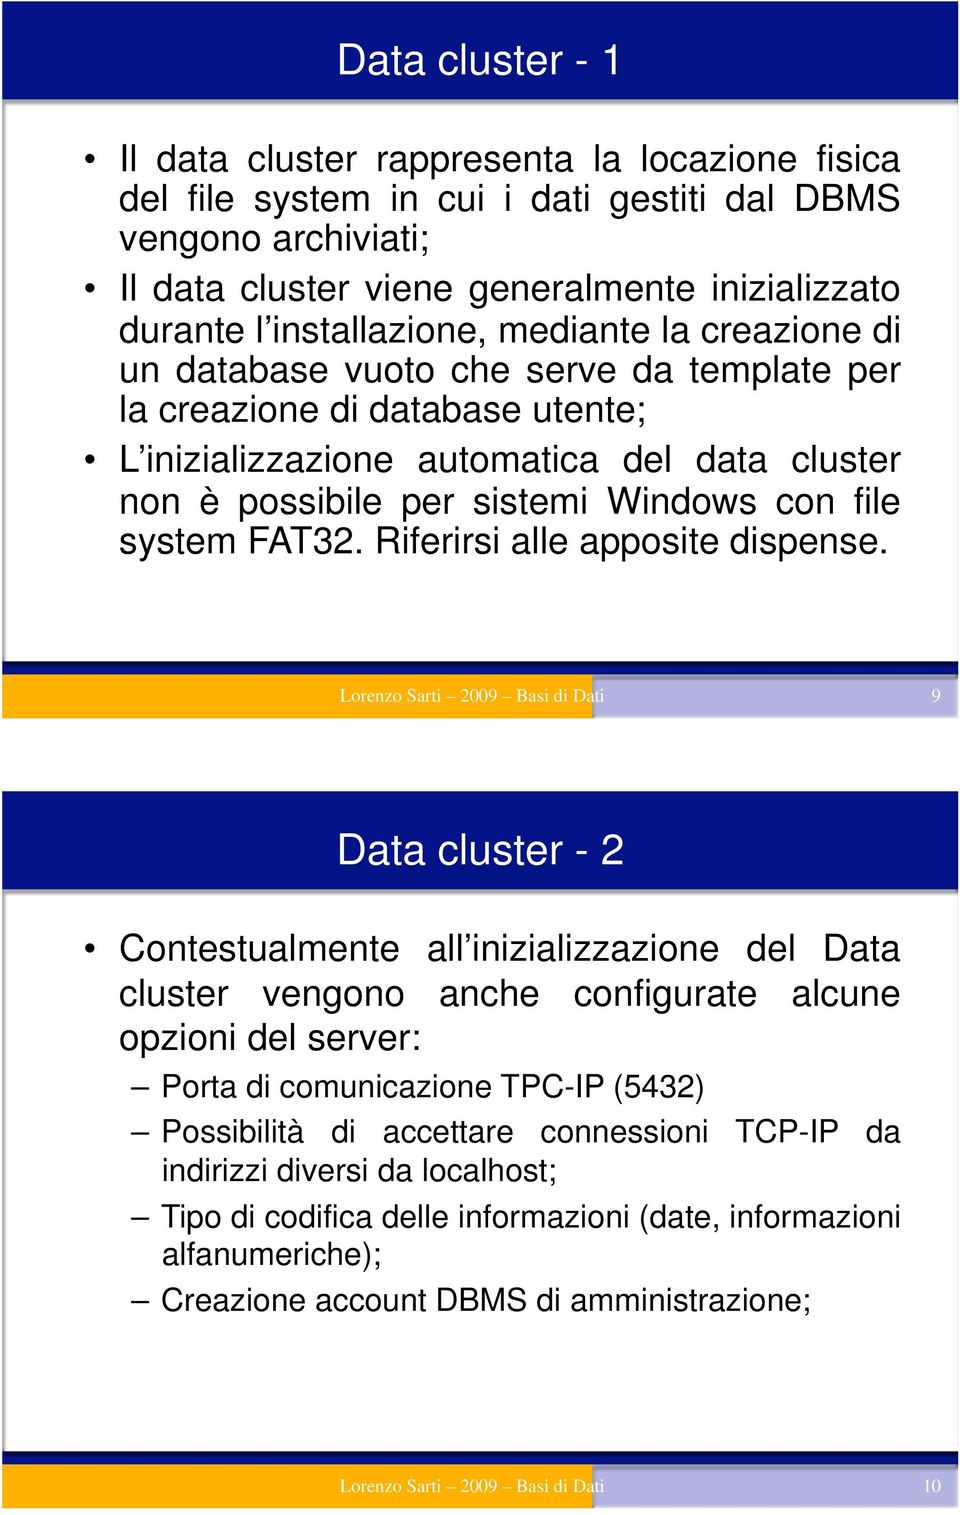 con file system FAT32. Riferirsi alle apposite dispense.